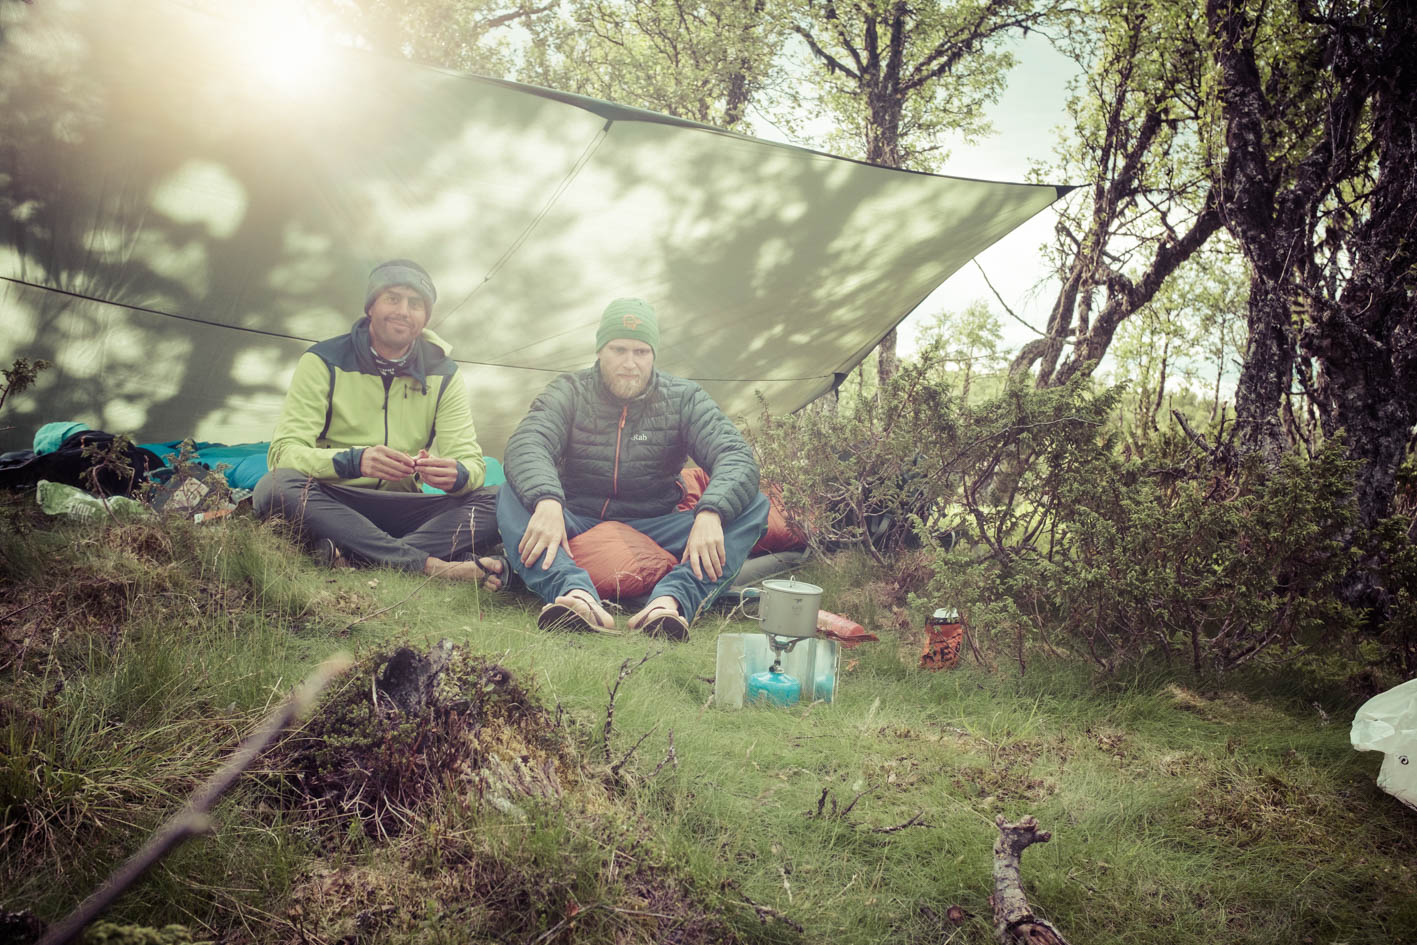 The simple life in Valdres